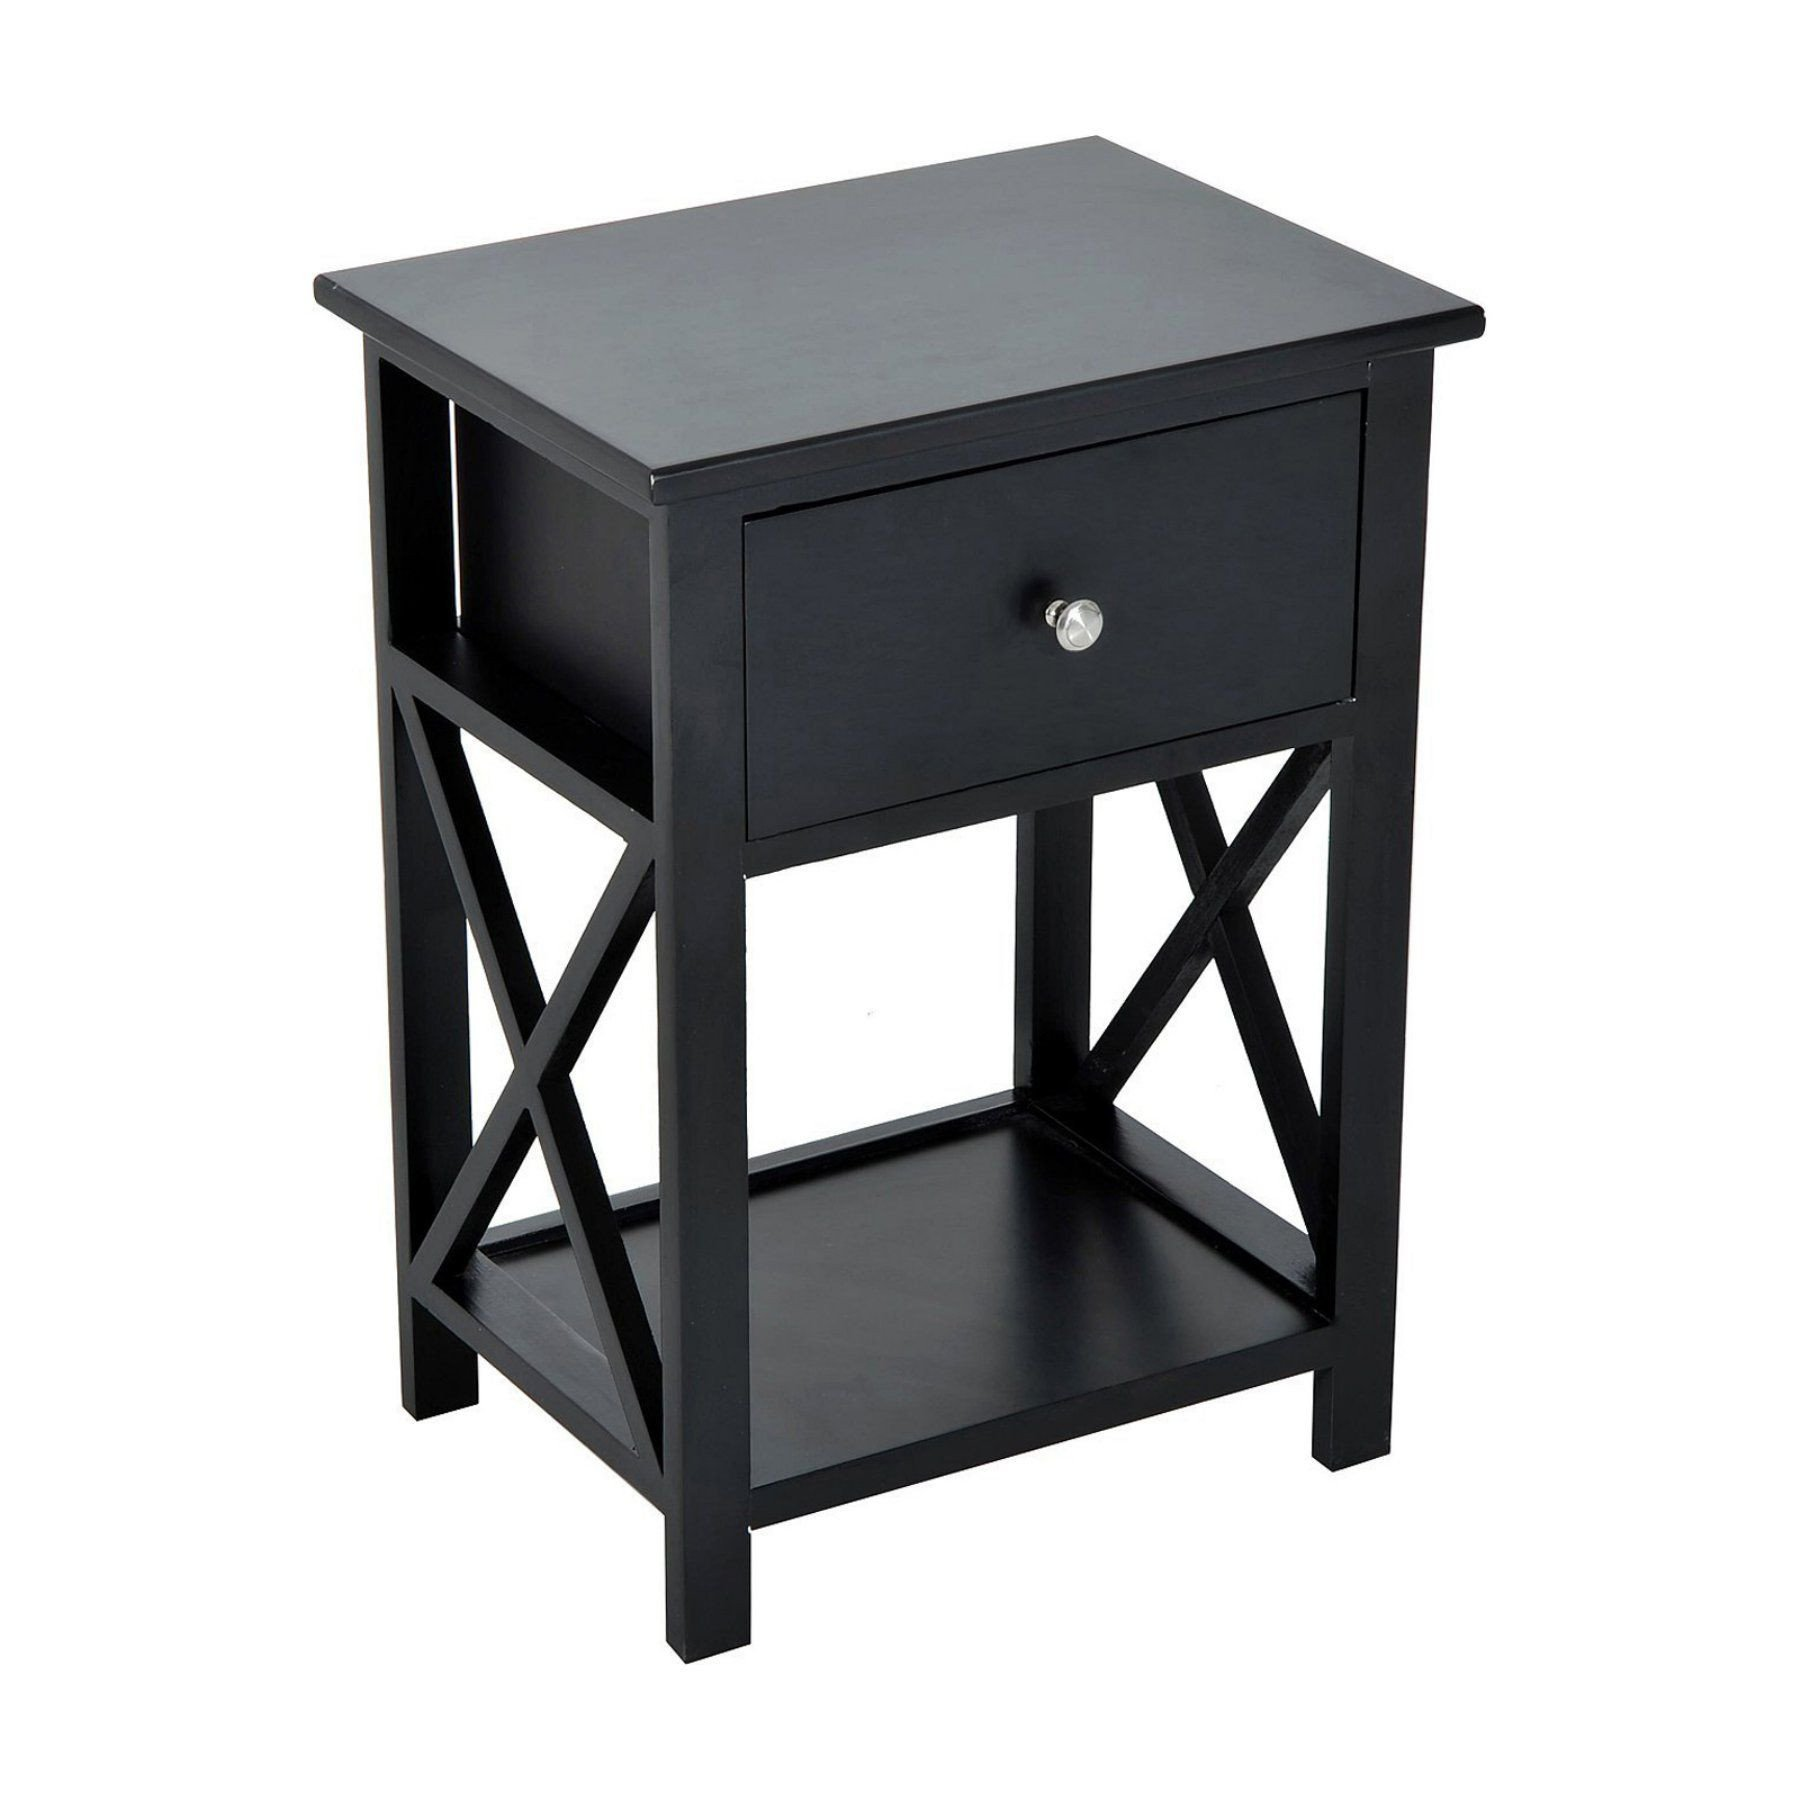 Small Bedroom End Tables Inspirational Pin On Products